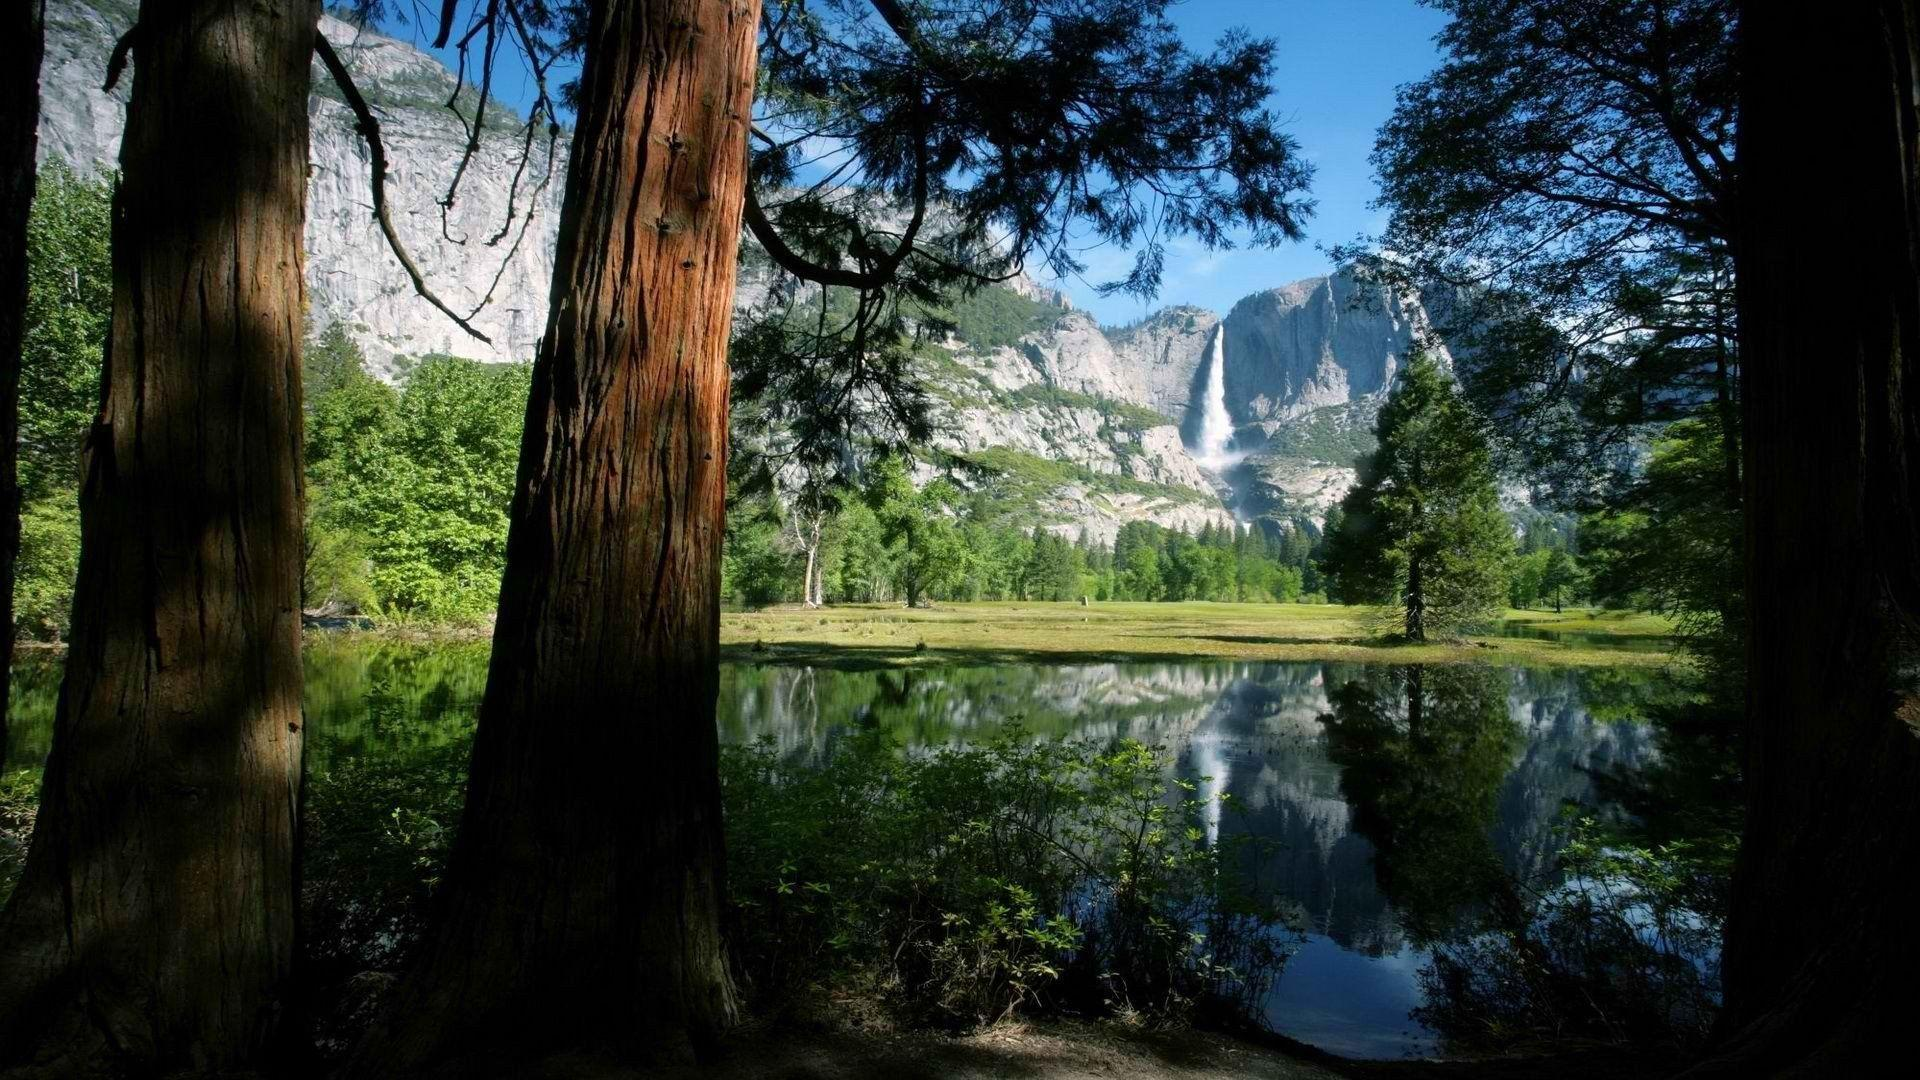 Falls California National Park Yosemite National Park wallpapers